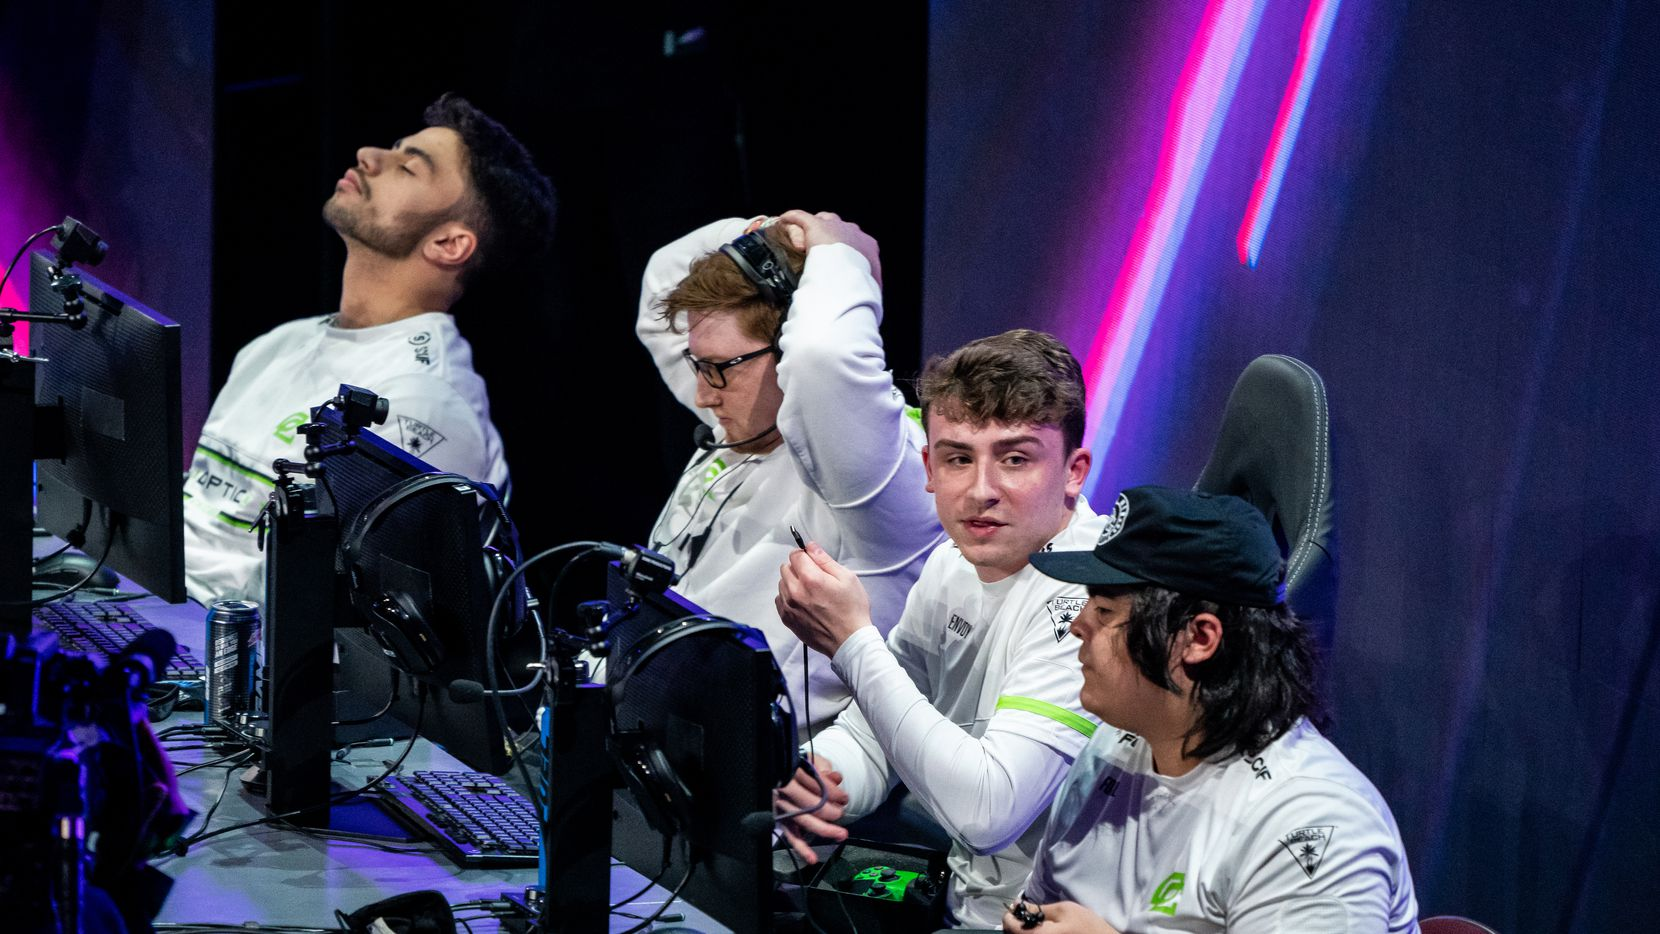 """From left, Brandon """"Dashy"""" Otell, Seth """"Scump"""" Abner, Dylan """"Envoy"""" Hannon, and Matthew """"FormaL"""" Piper of OpTic Chicago react to their loss to Toronto Ultra and elimination from the Call of Duty league playoffs at Galen Center on Friday, August 20, 2021 in Los Angeles, California. (Justin L. Stewart/Special Contributor)"""